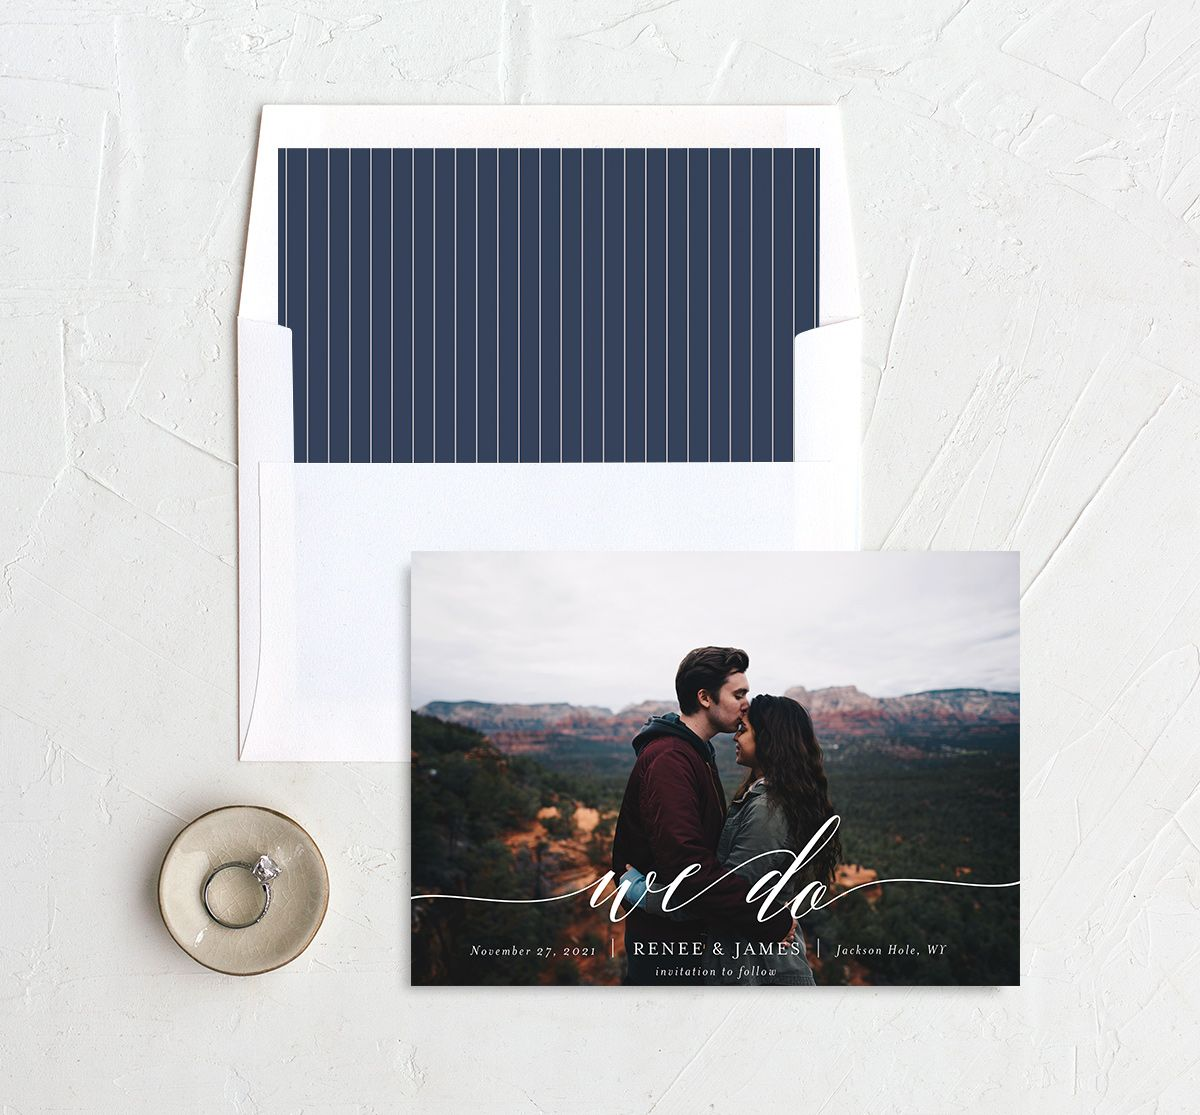 Scripted We Do Photo Wedding Announcements in navy with liner